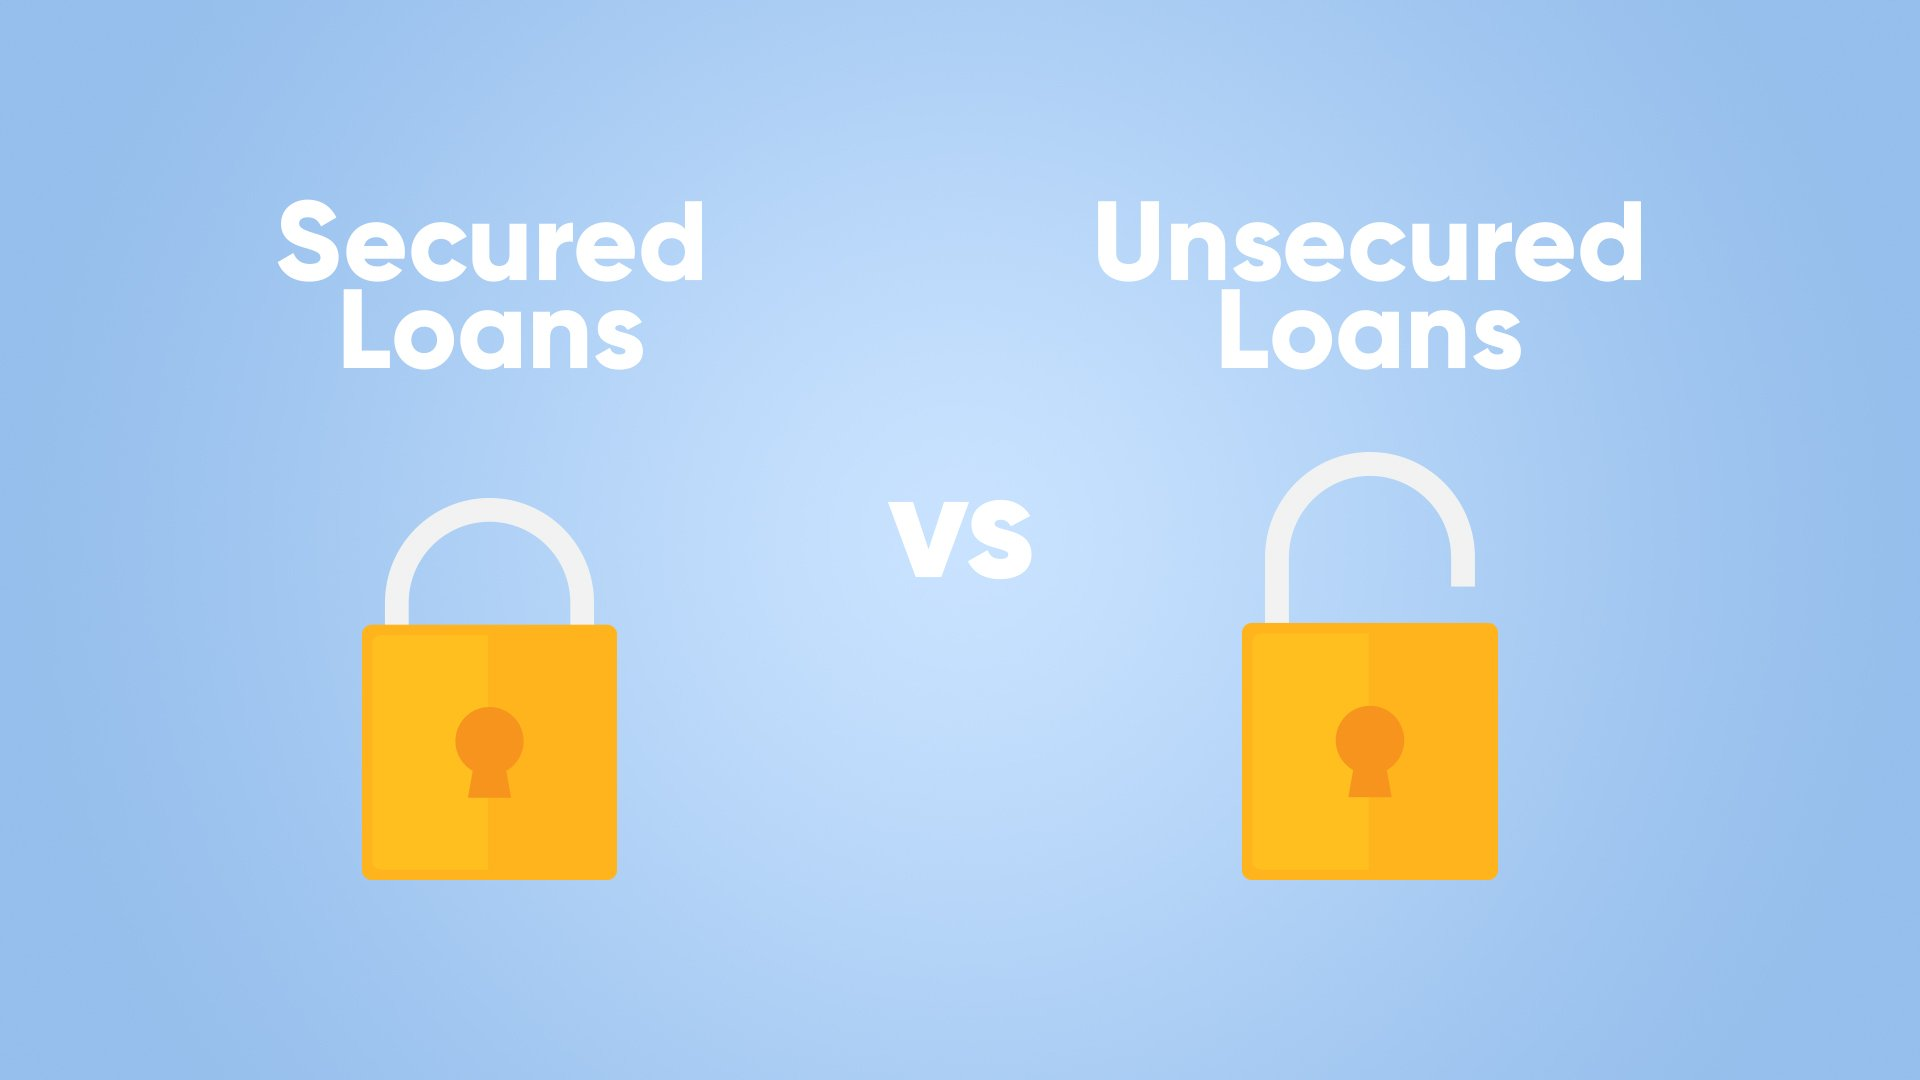 Secured Loans Vs. Unsecured Loans: Which Are Better?